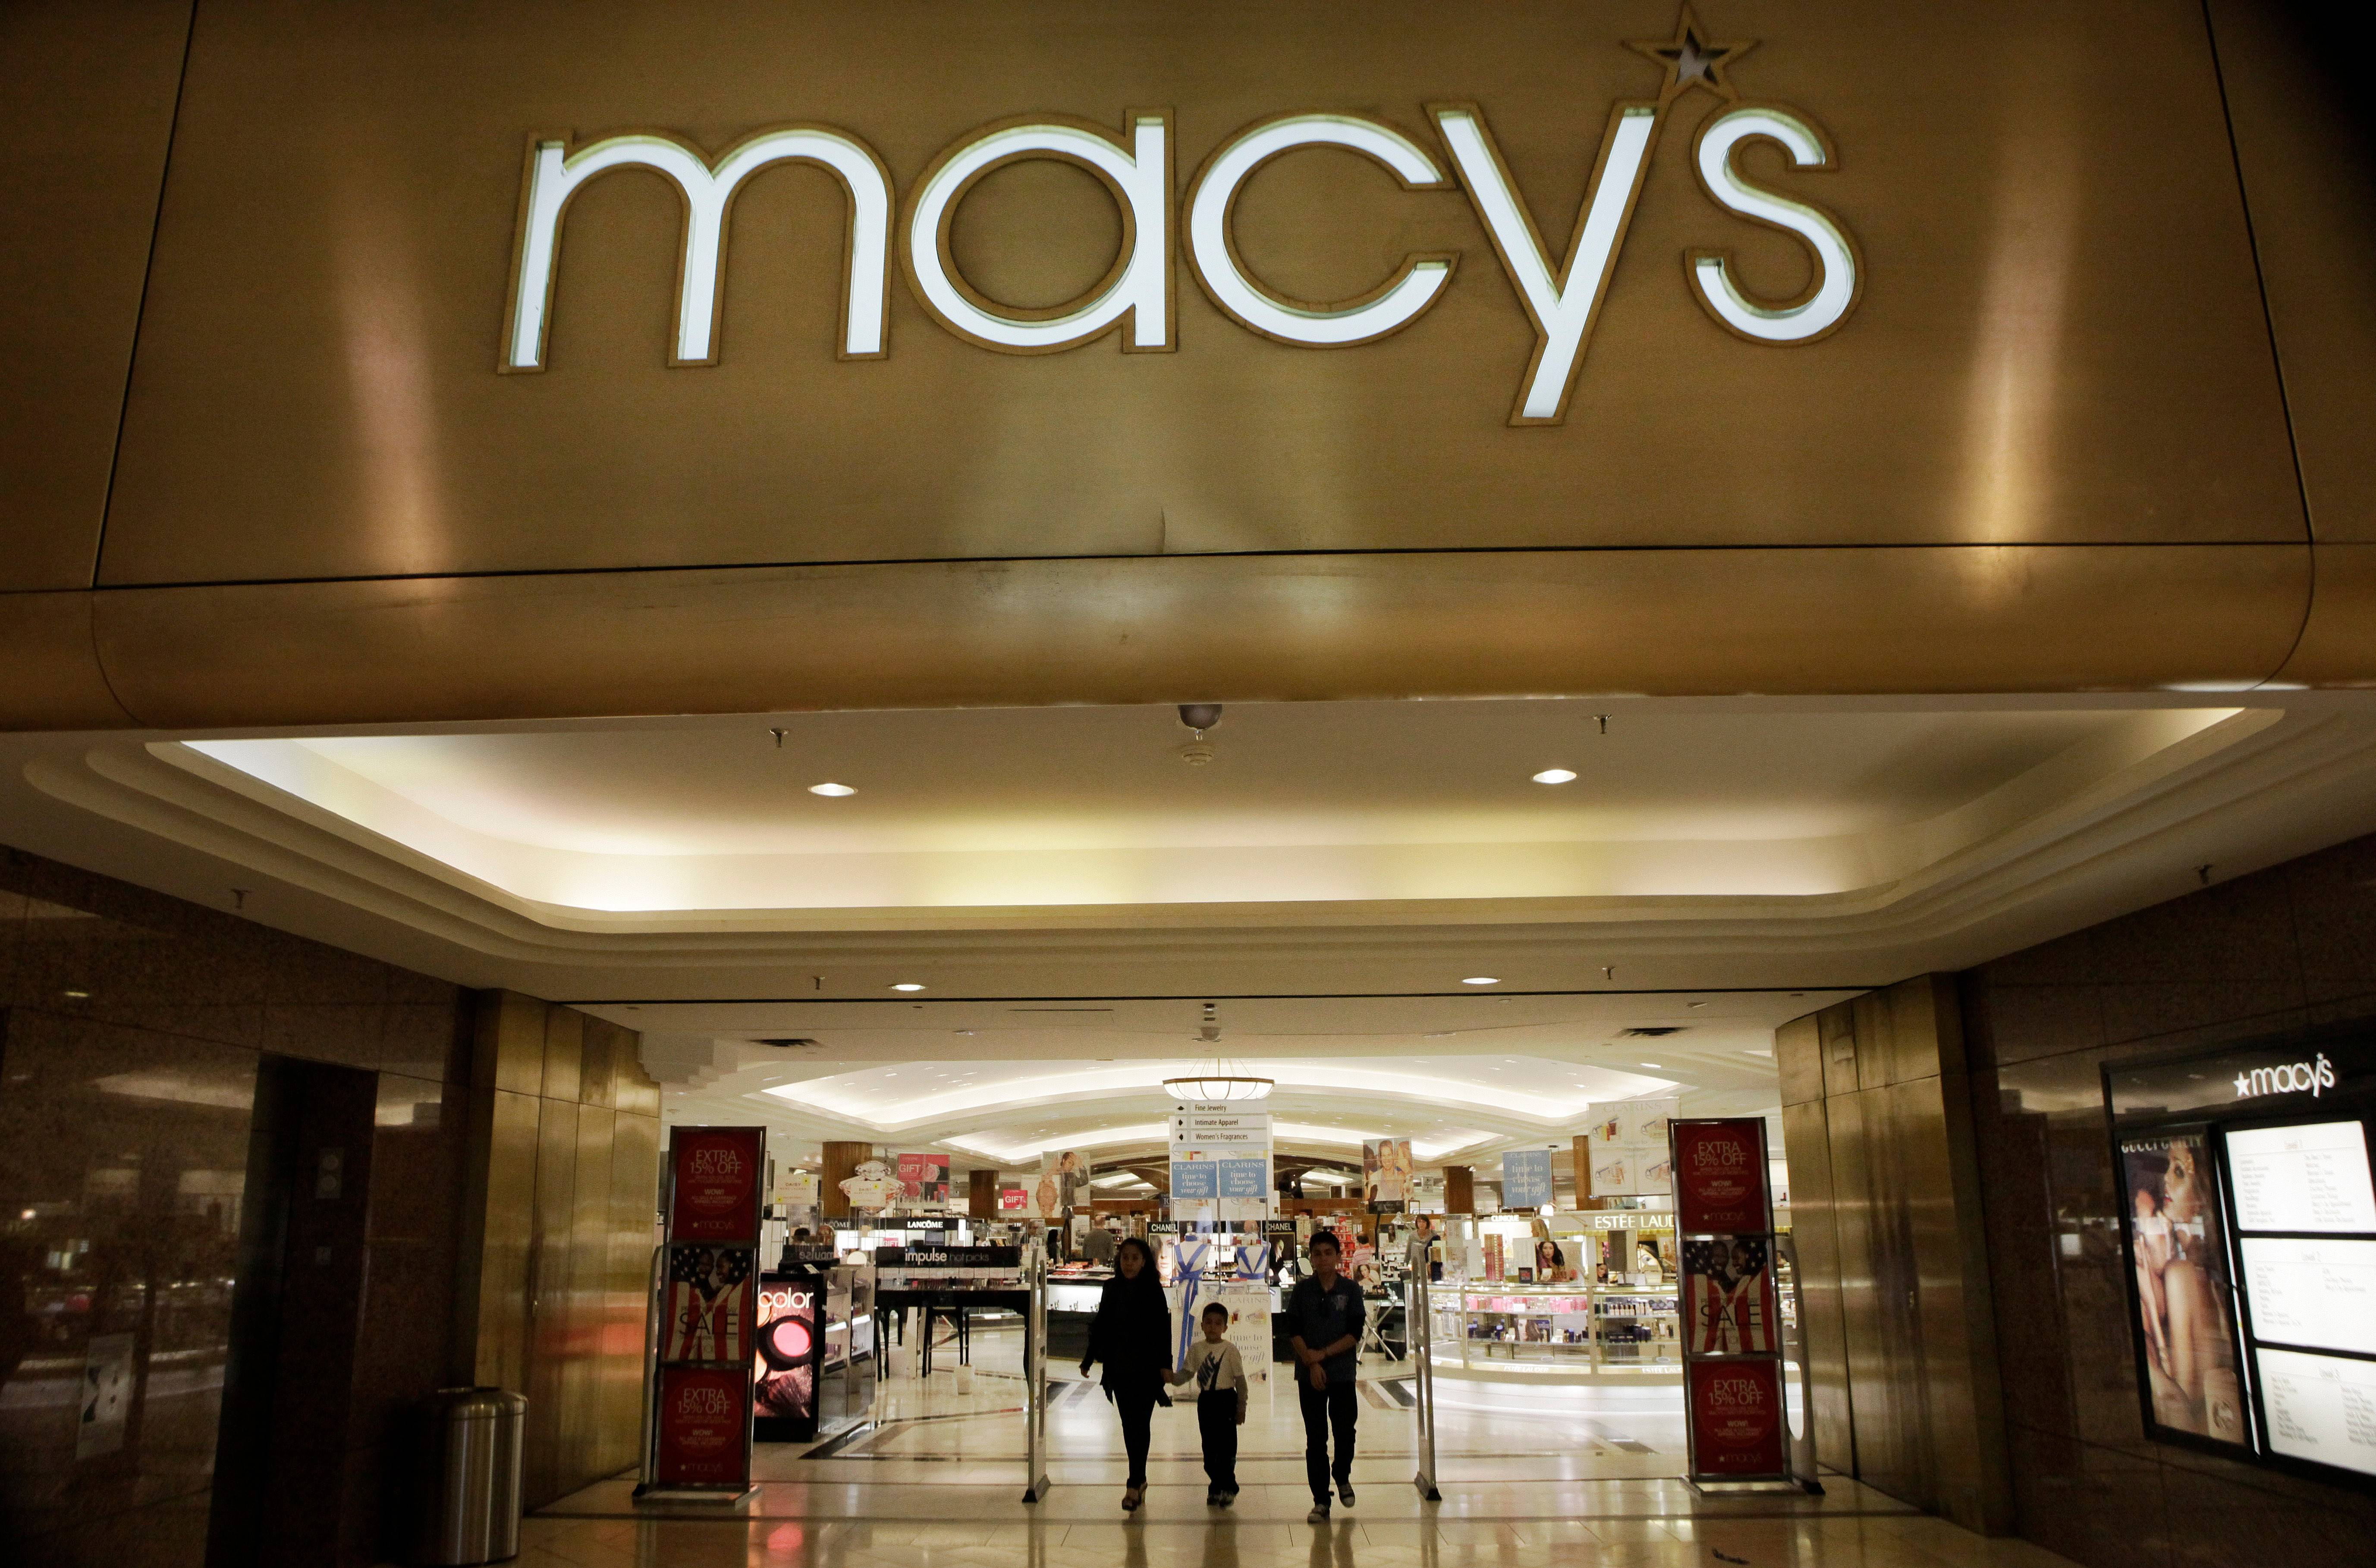 Macy's reported 1.1 percent growth in same-store sales during November and December, but the company said Thursday that it plans to 11 U.S. stores in the coming weeks.